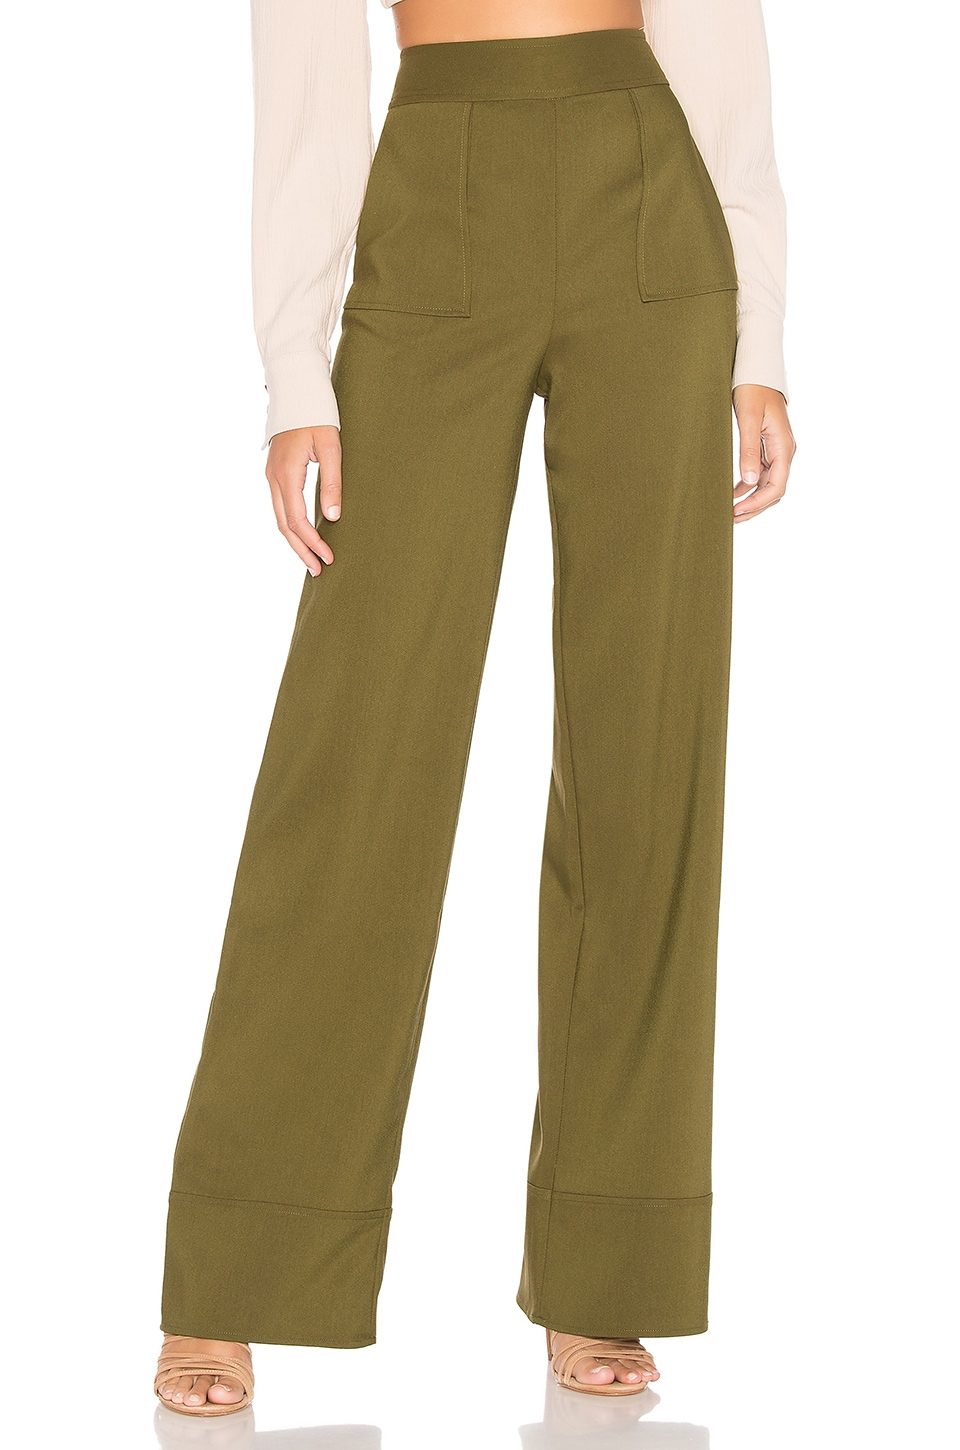 Lovers + Friends Sedge Pant in Army